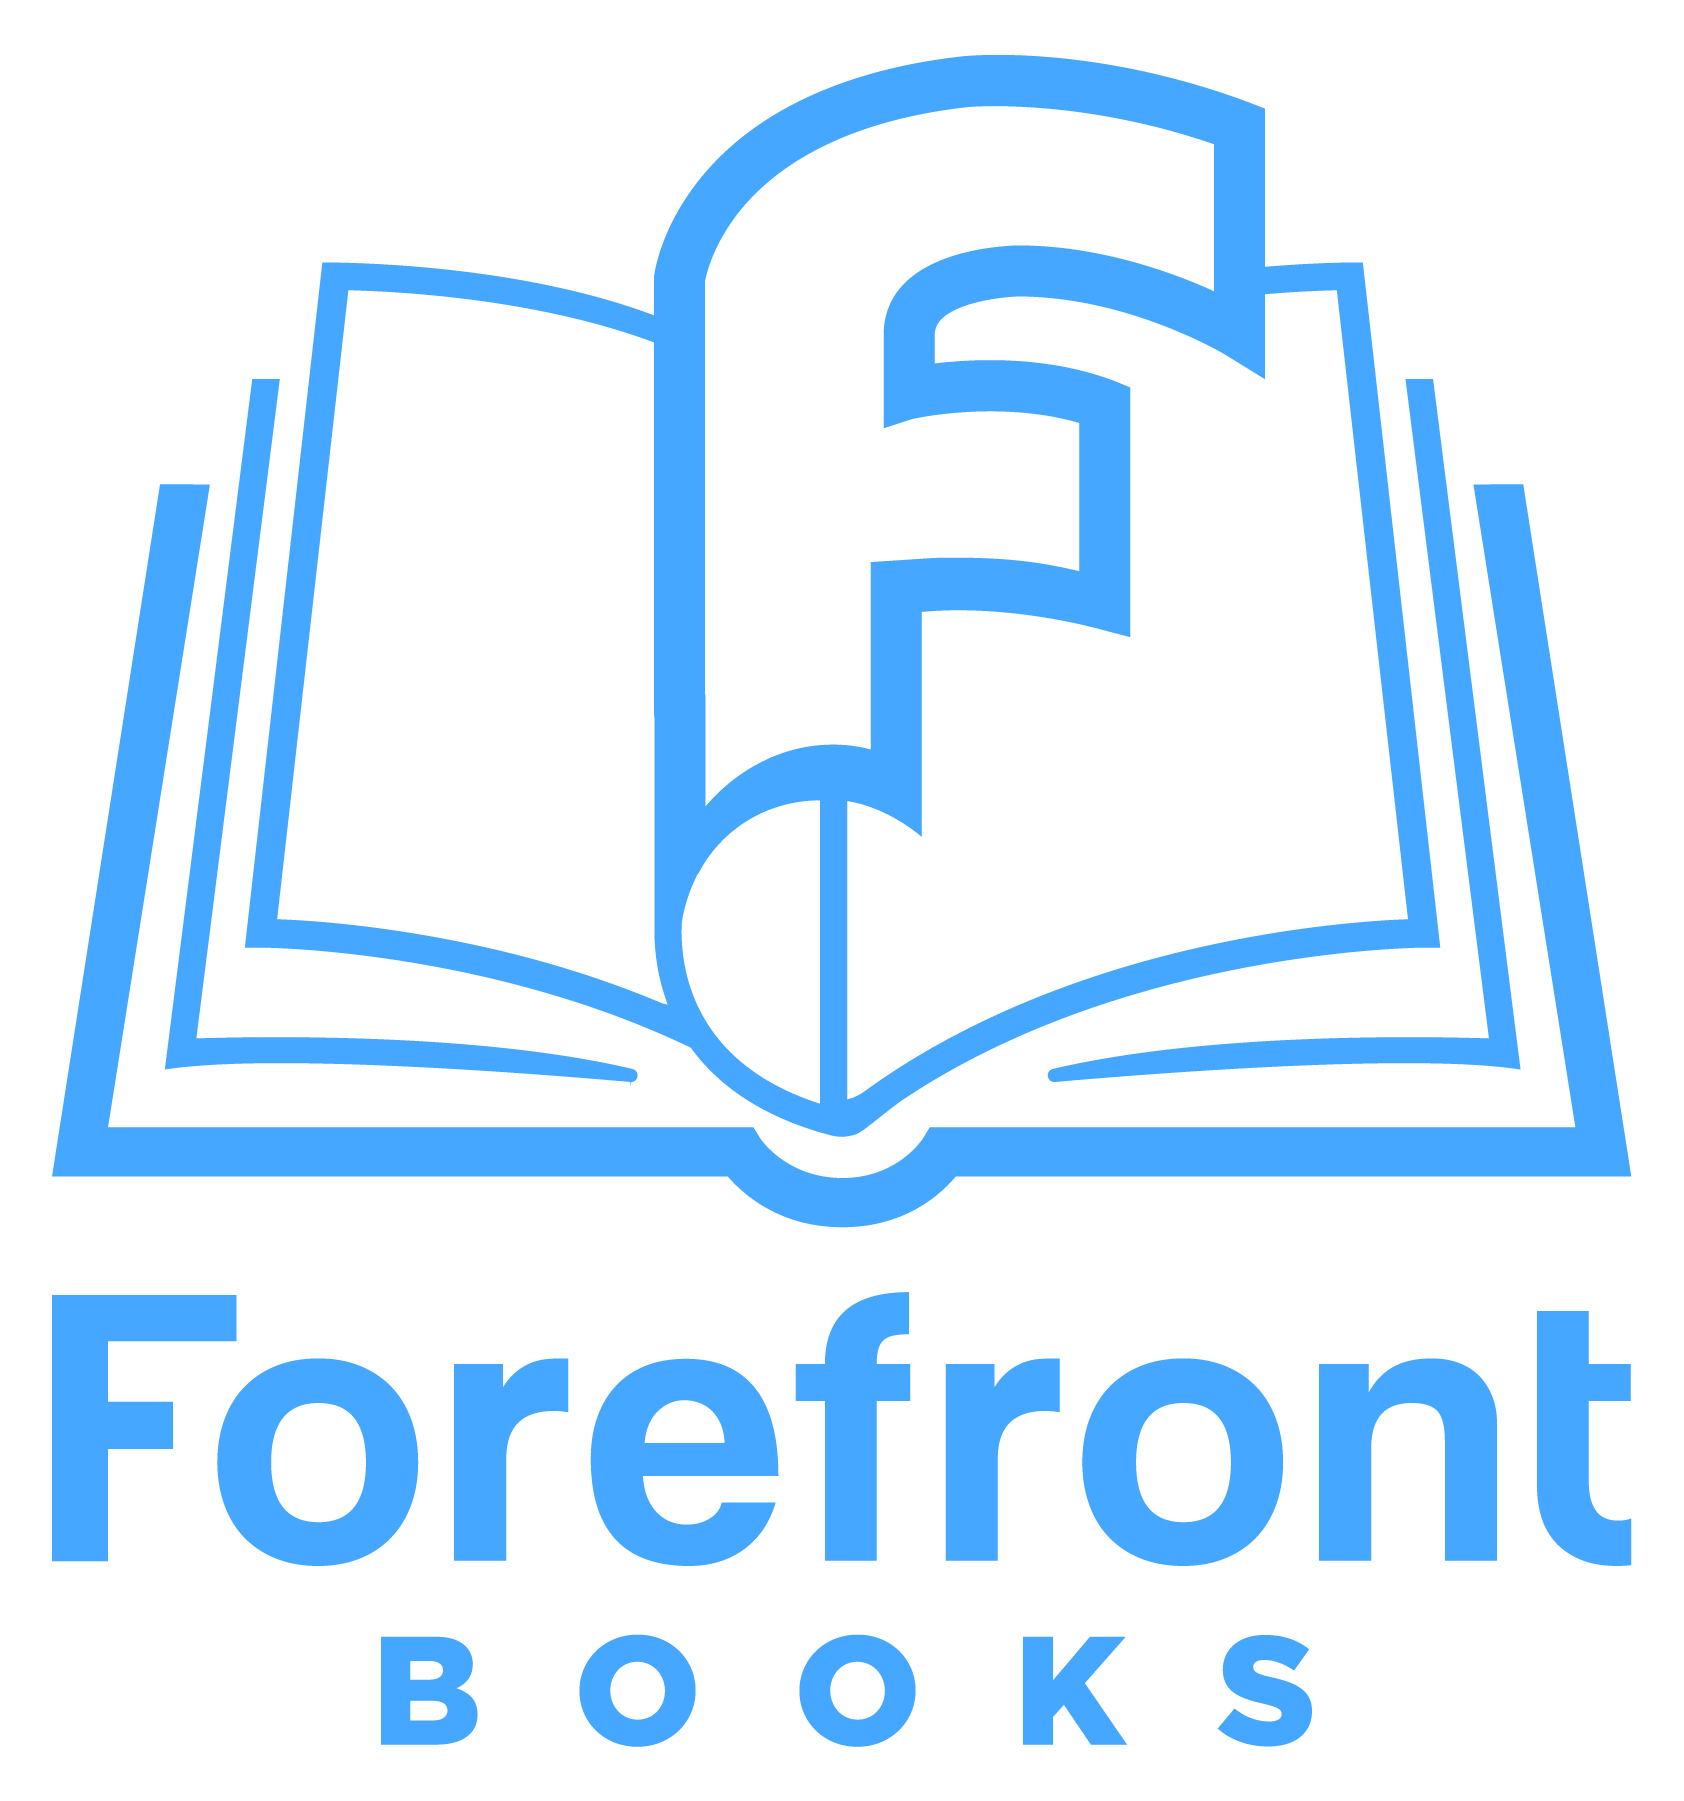 forefront books